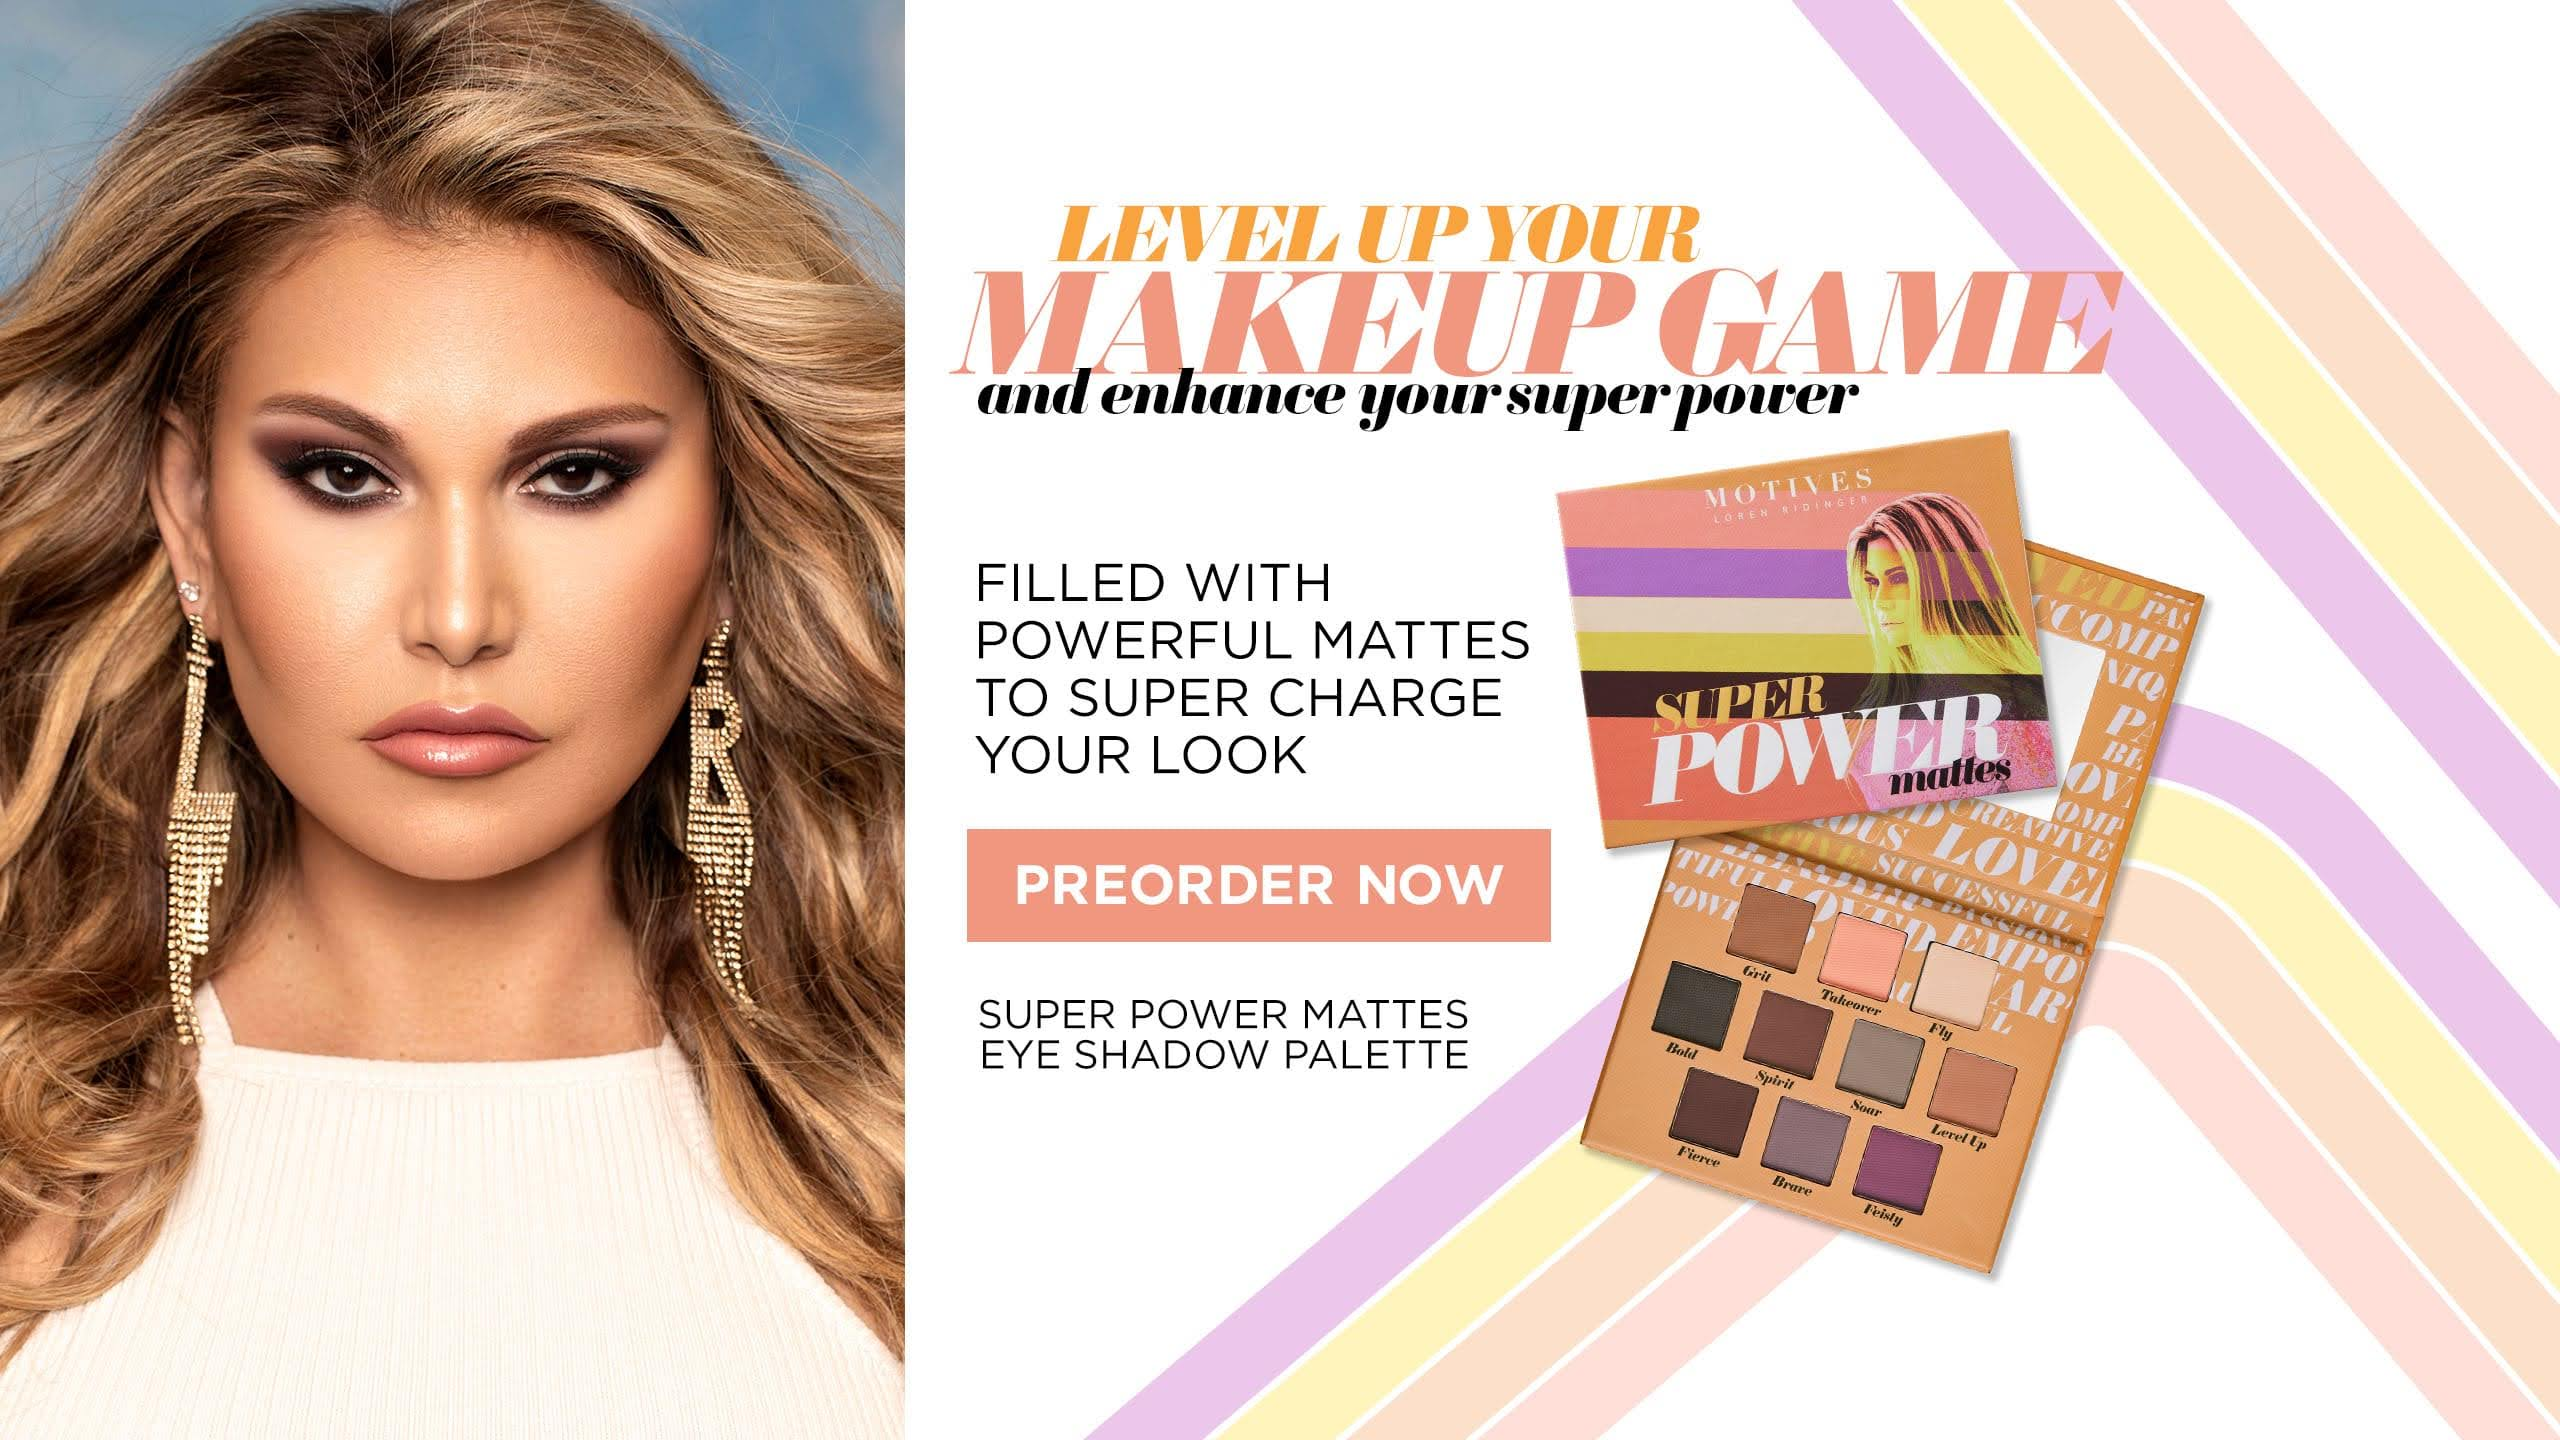 Loren Ridinger Shares The Scoop About Her New Super Power Palette